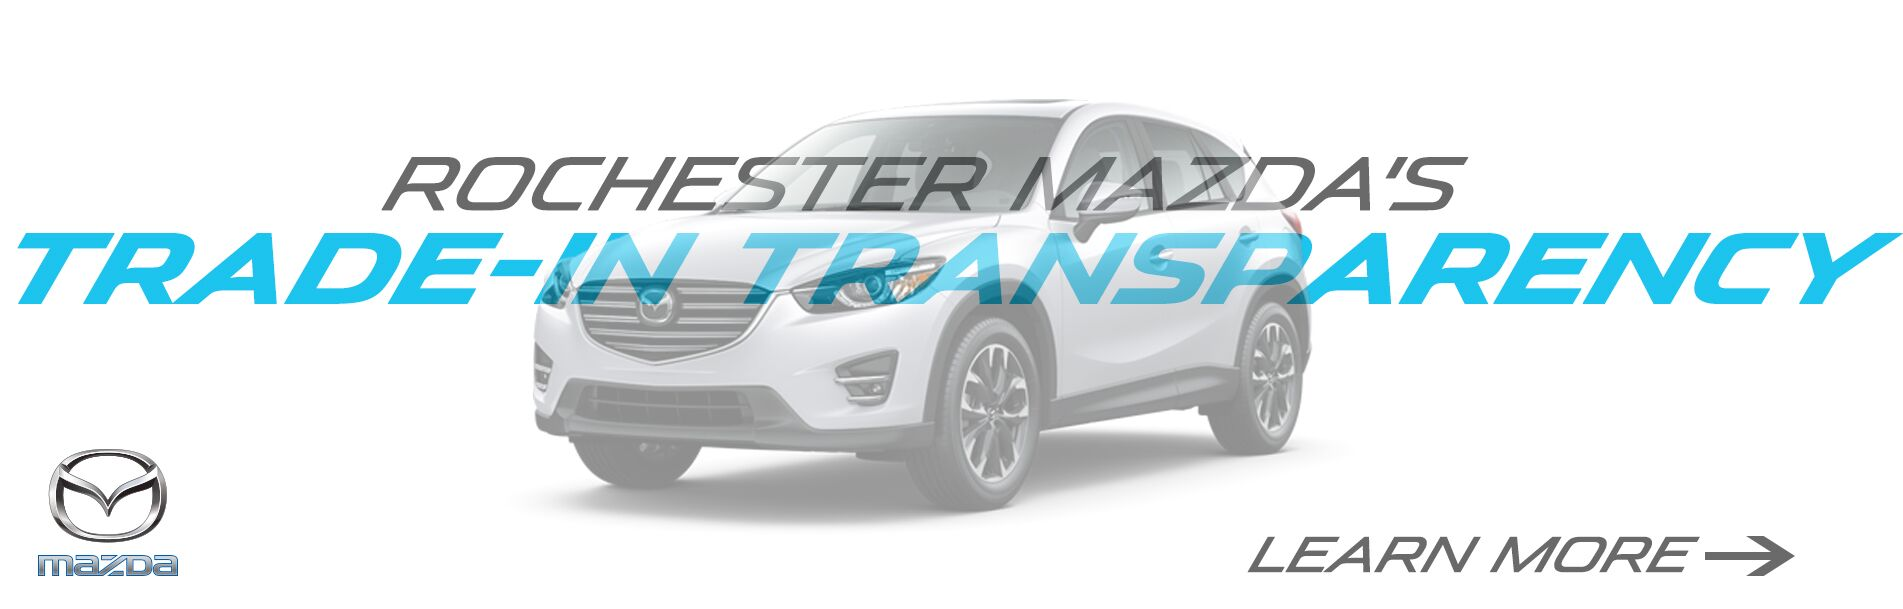 Rochester Mazda Trade-In Transparency